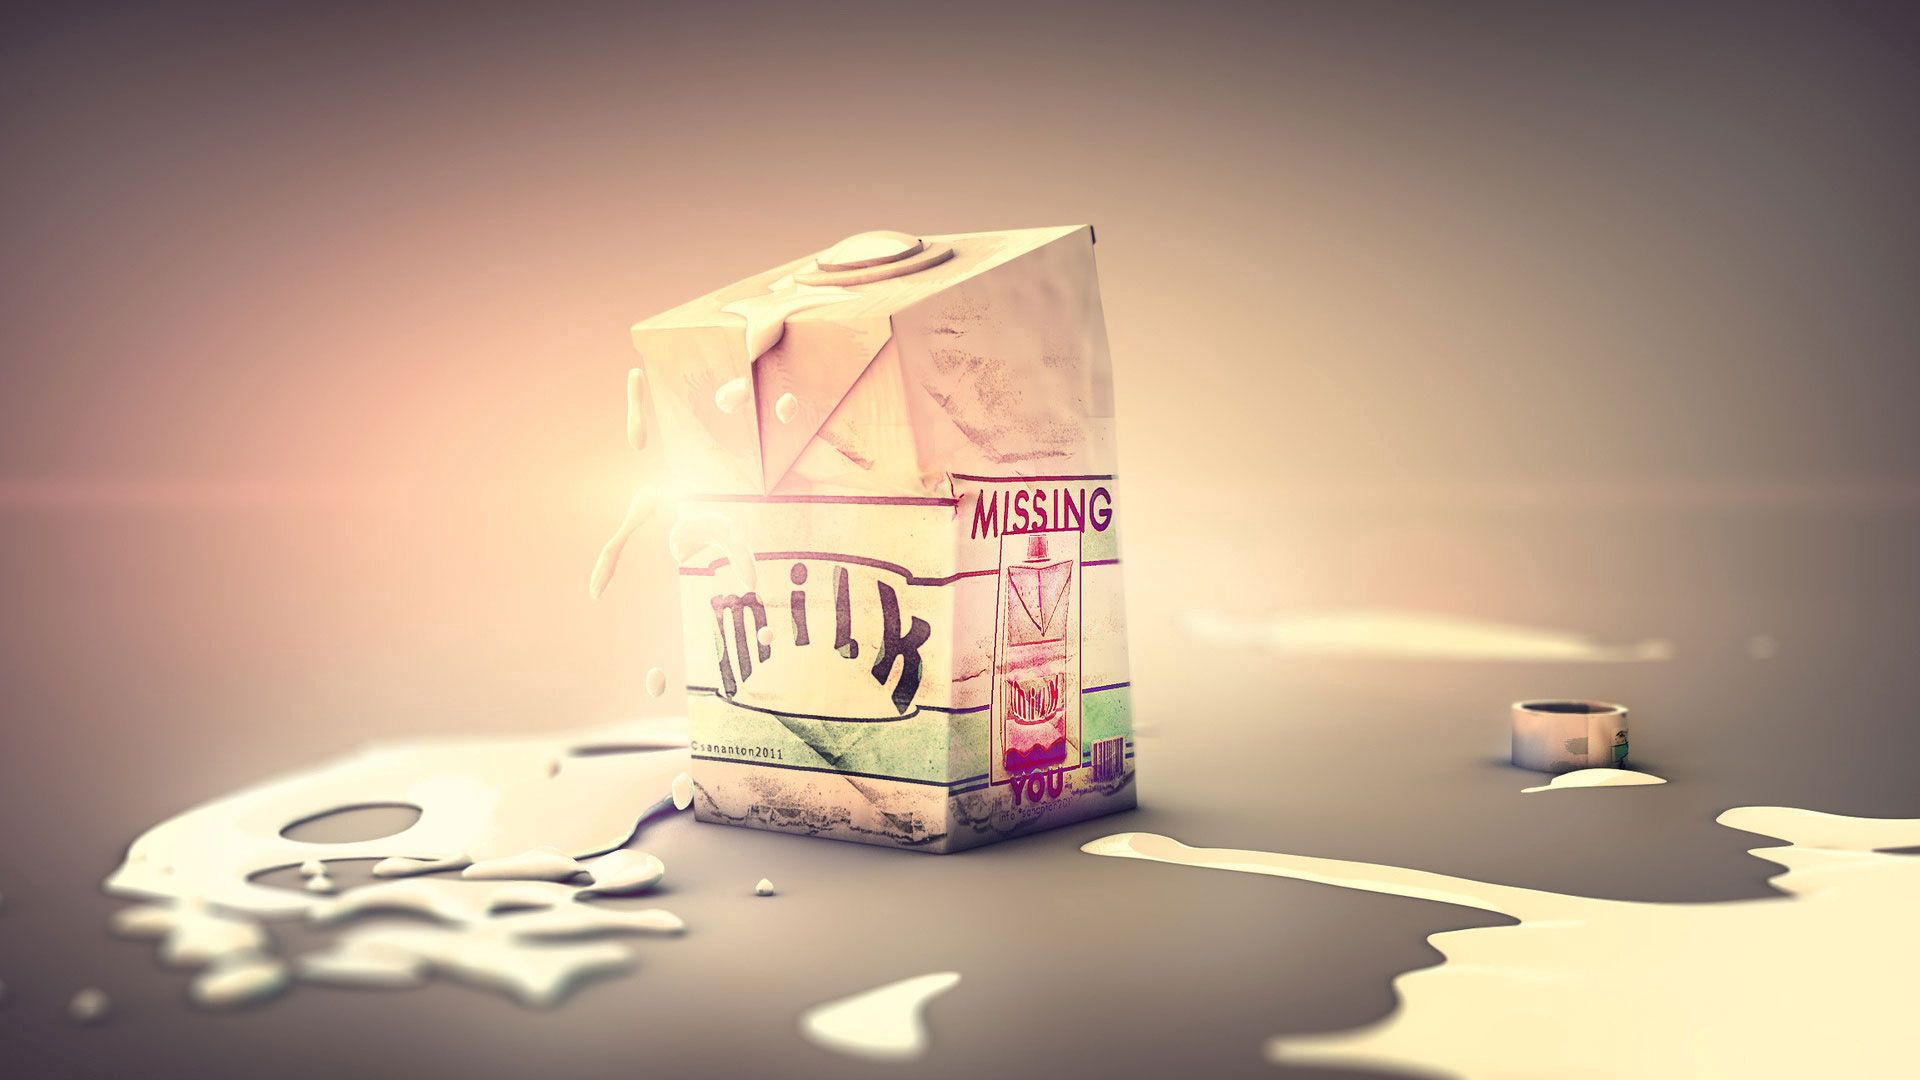 56498 download wallpaper Art, Milk, Box, Drops screensavers and pictures for free